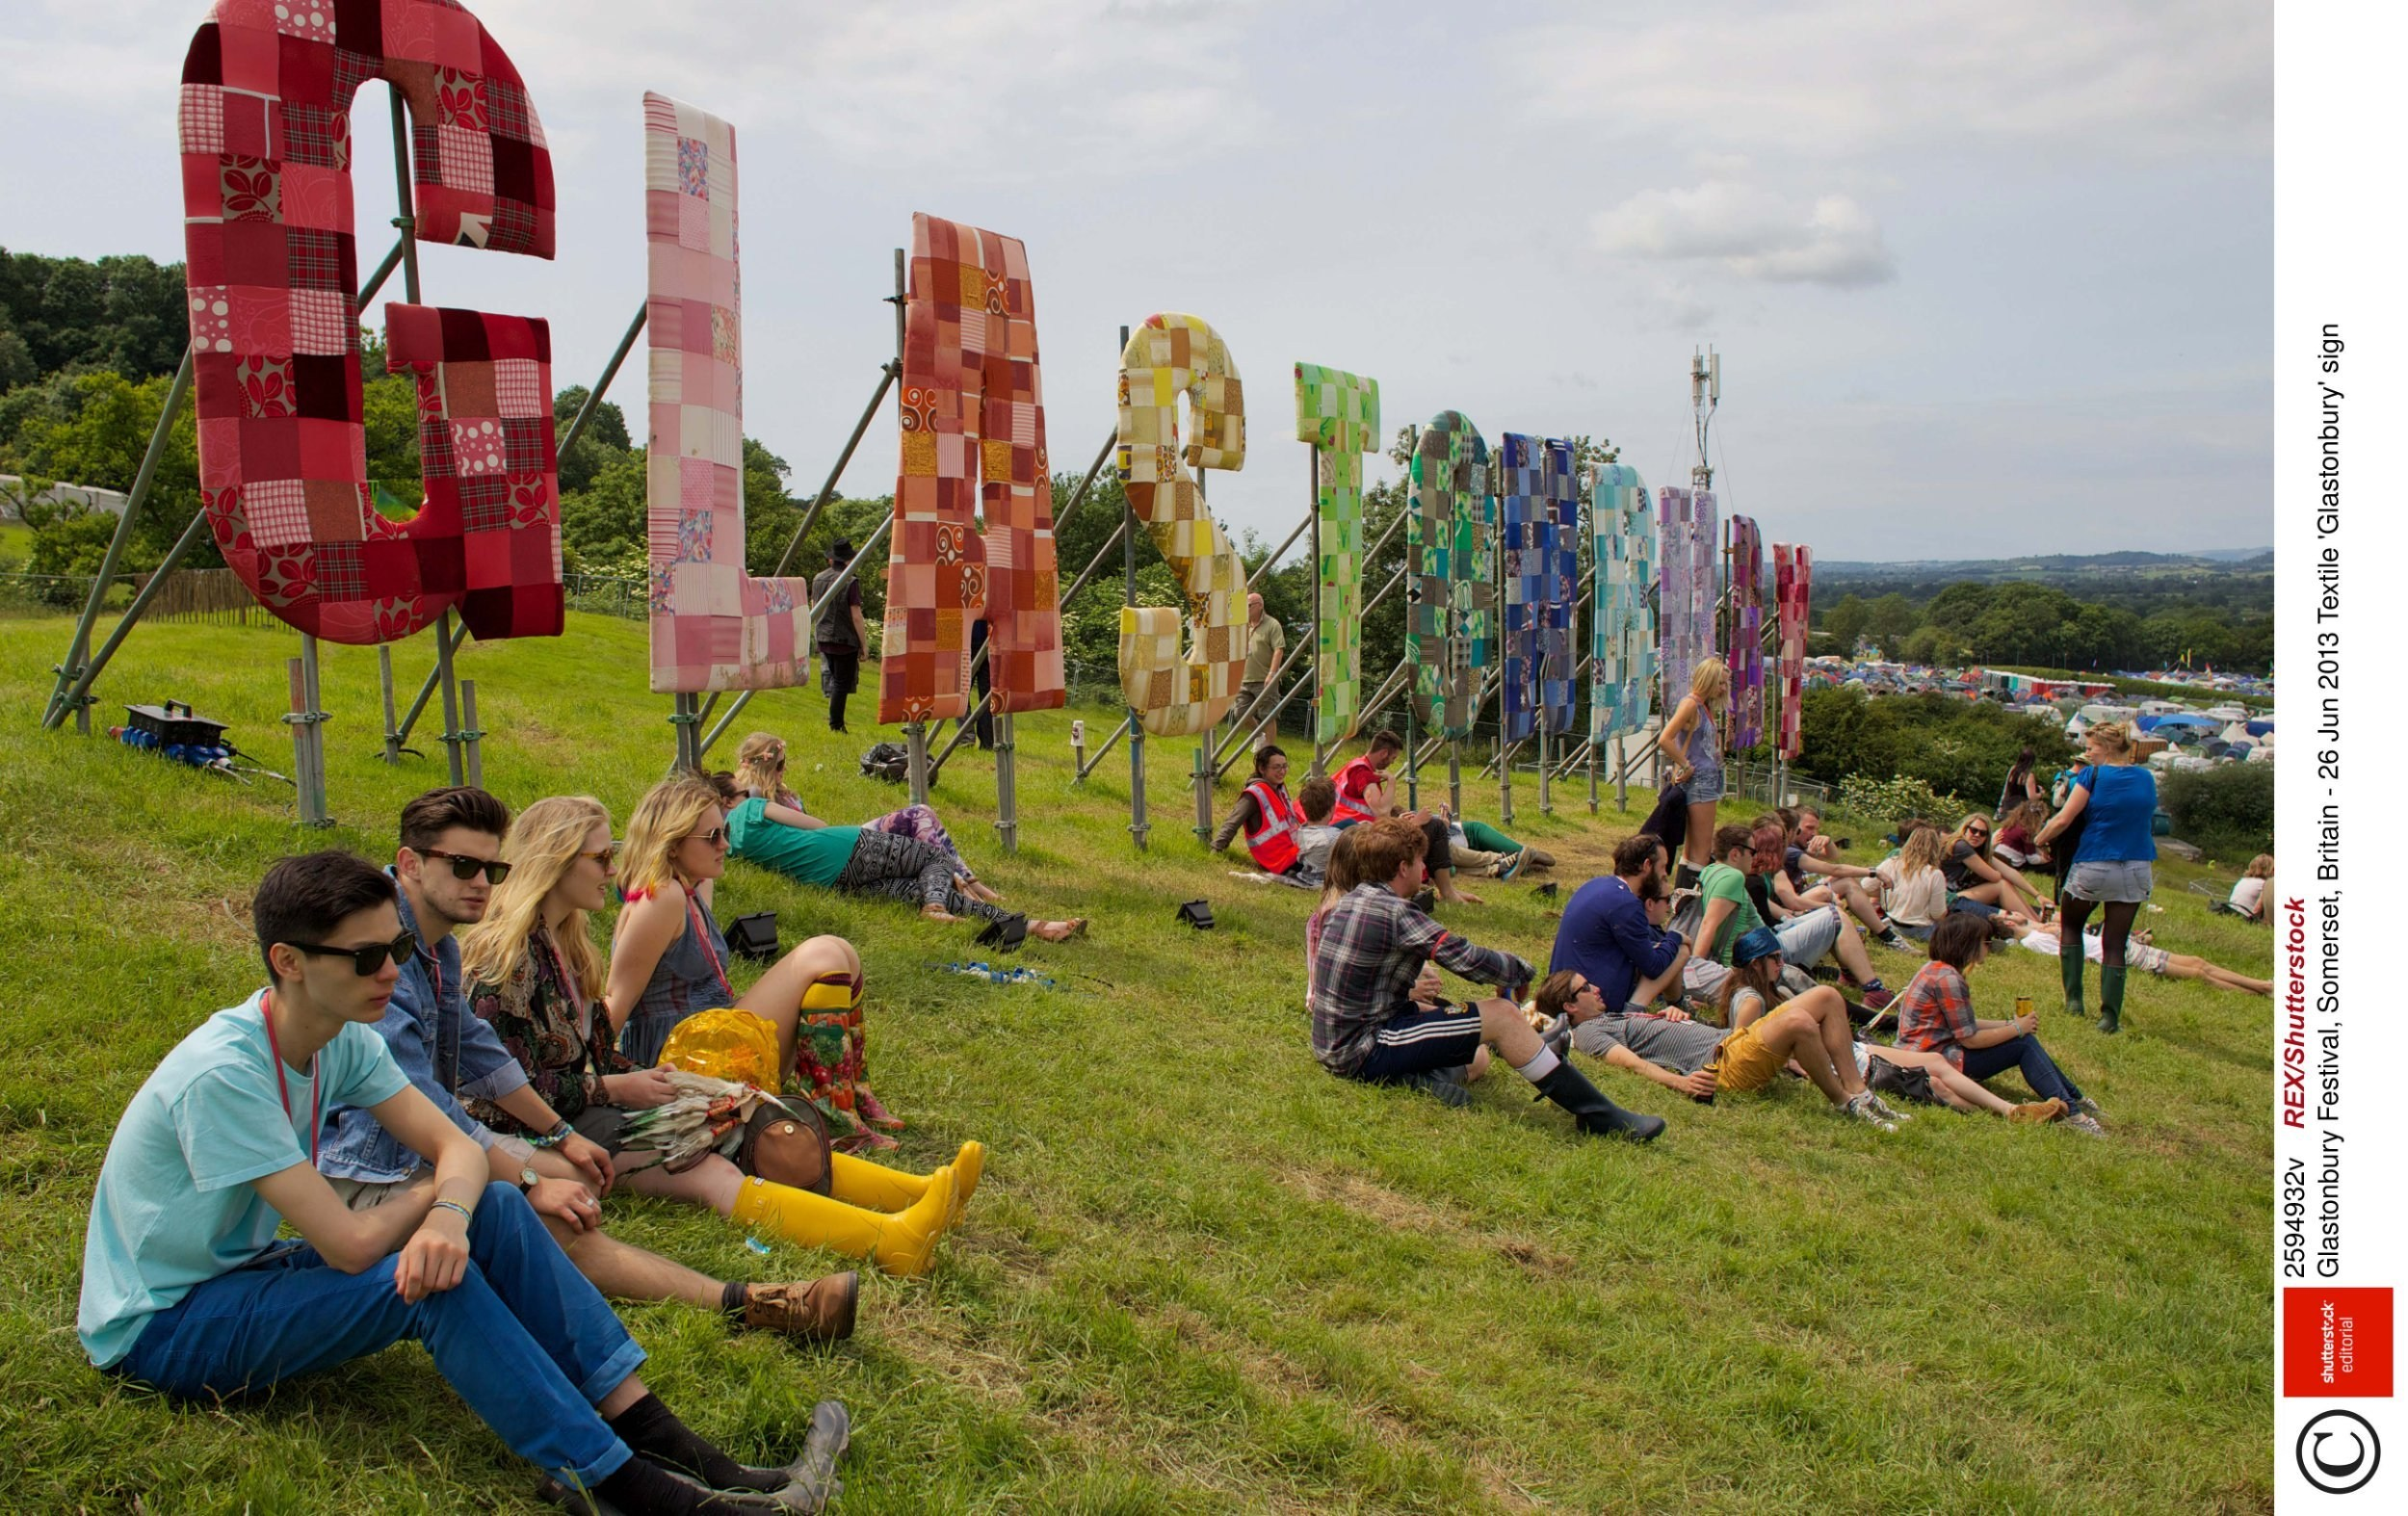 Glastonbury urges fans not to visit Worthy Farm after festival was cancelled due to coronavirus